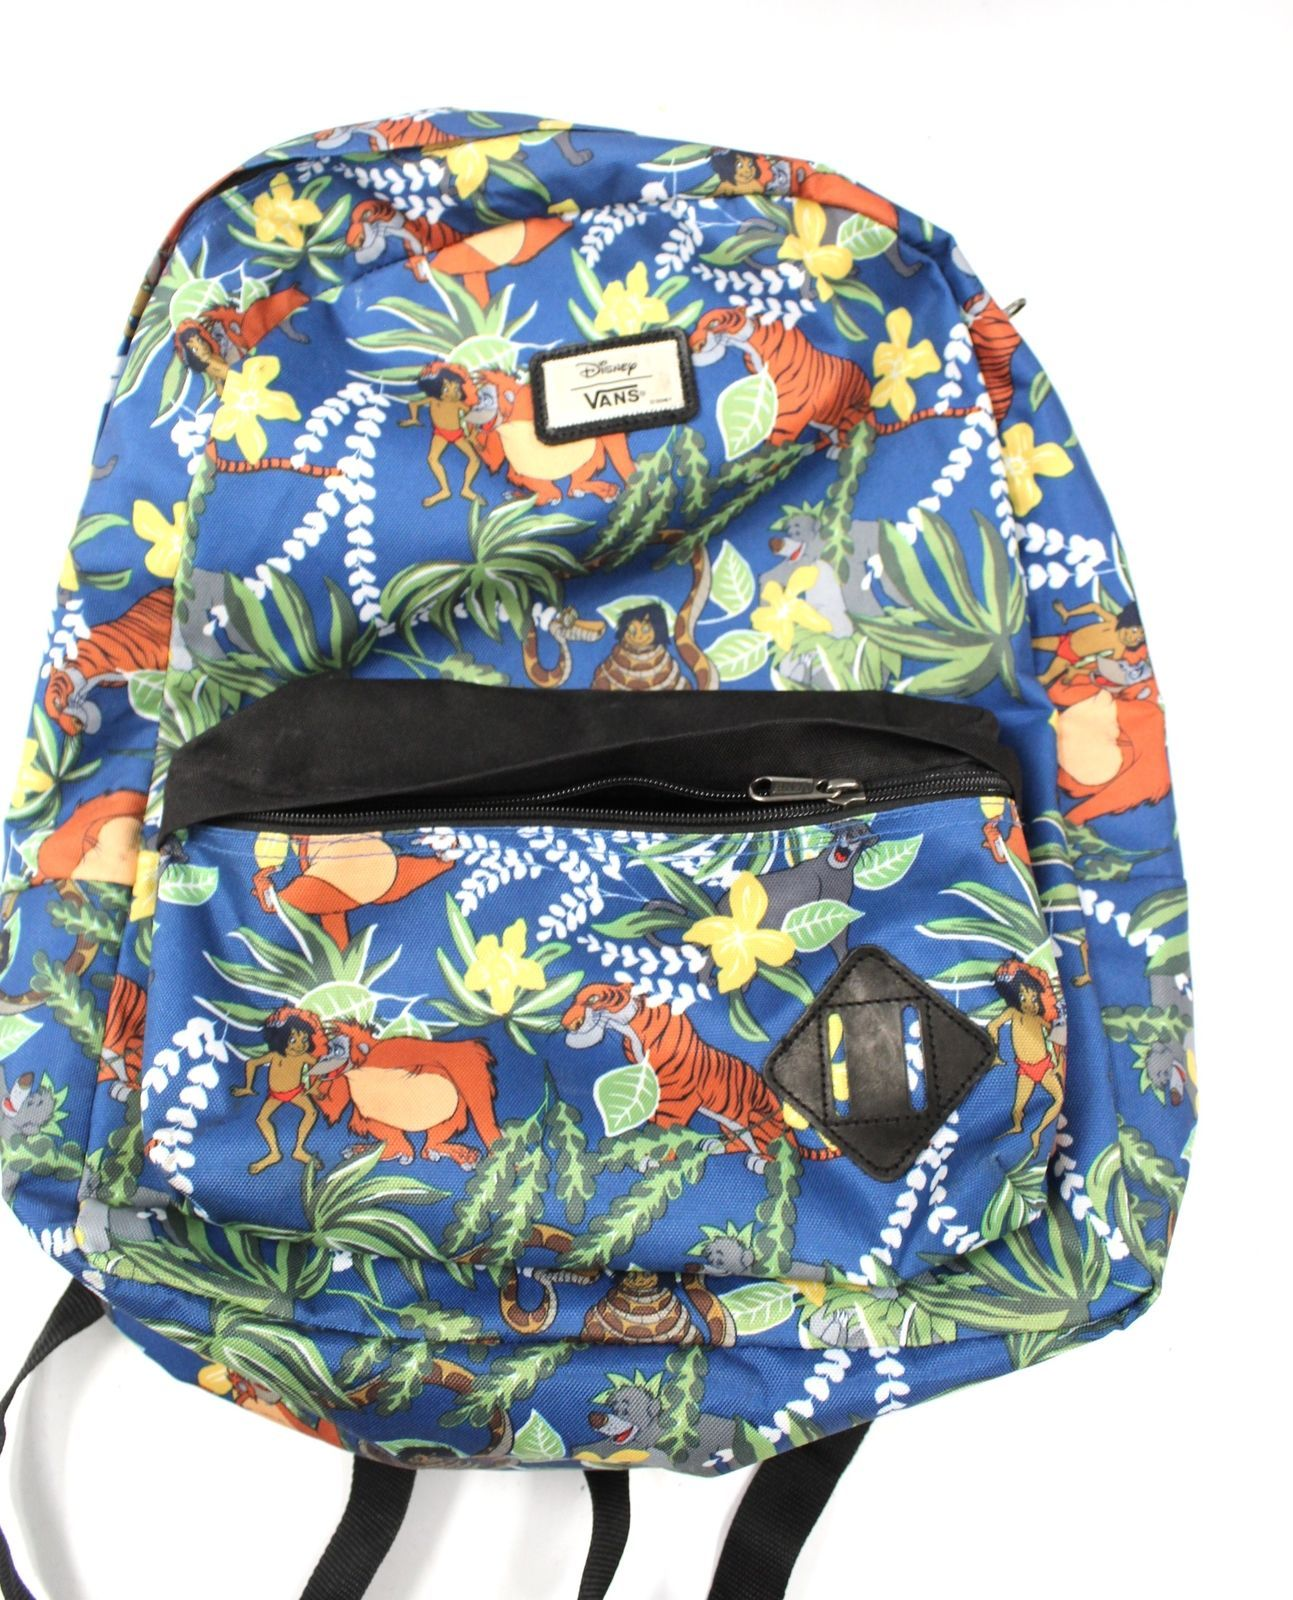 c2896b51d The Jungle Book Backpack   The Shred Centre